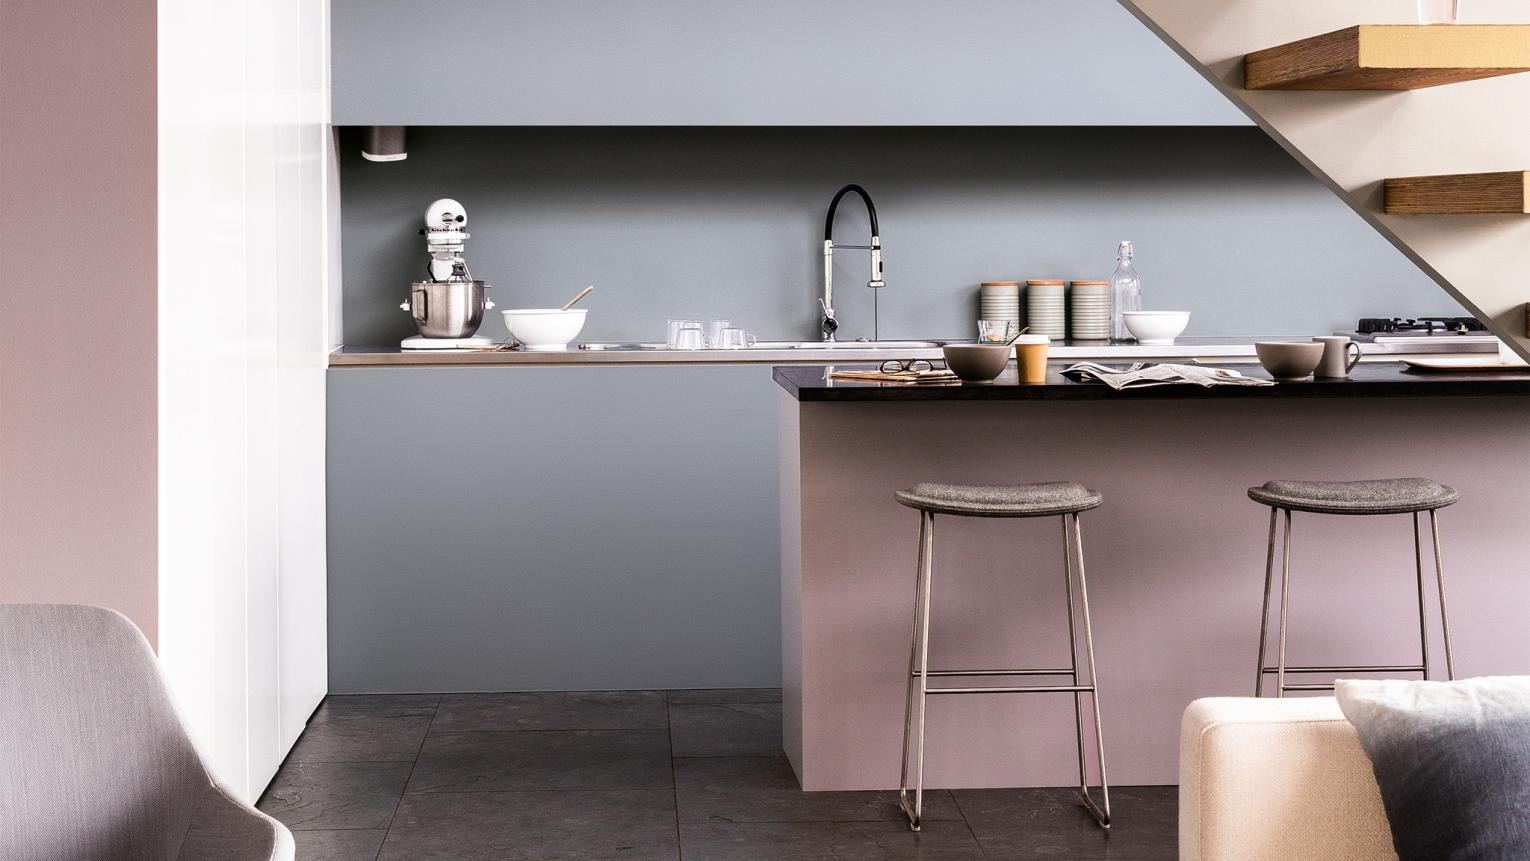 Learn how to use colour to make the most of unloved areas.